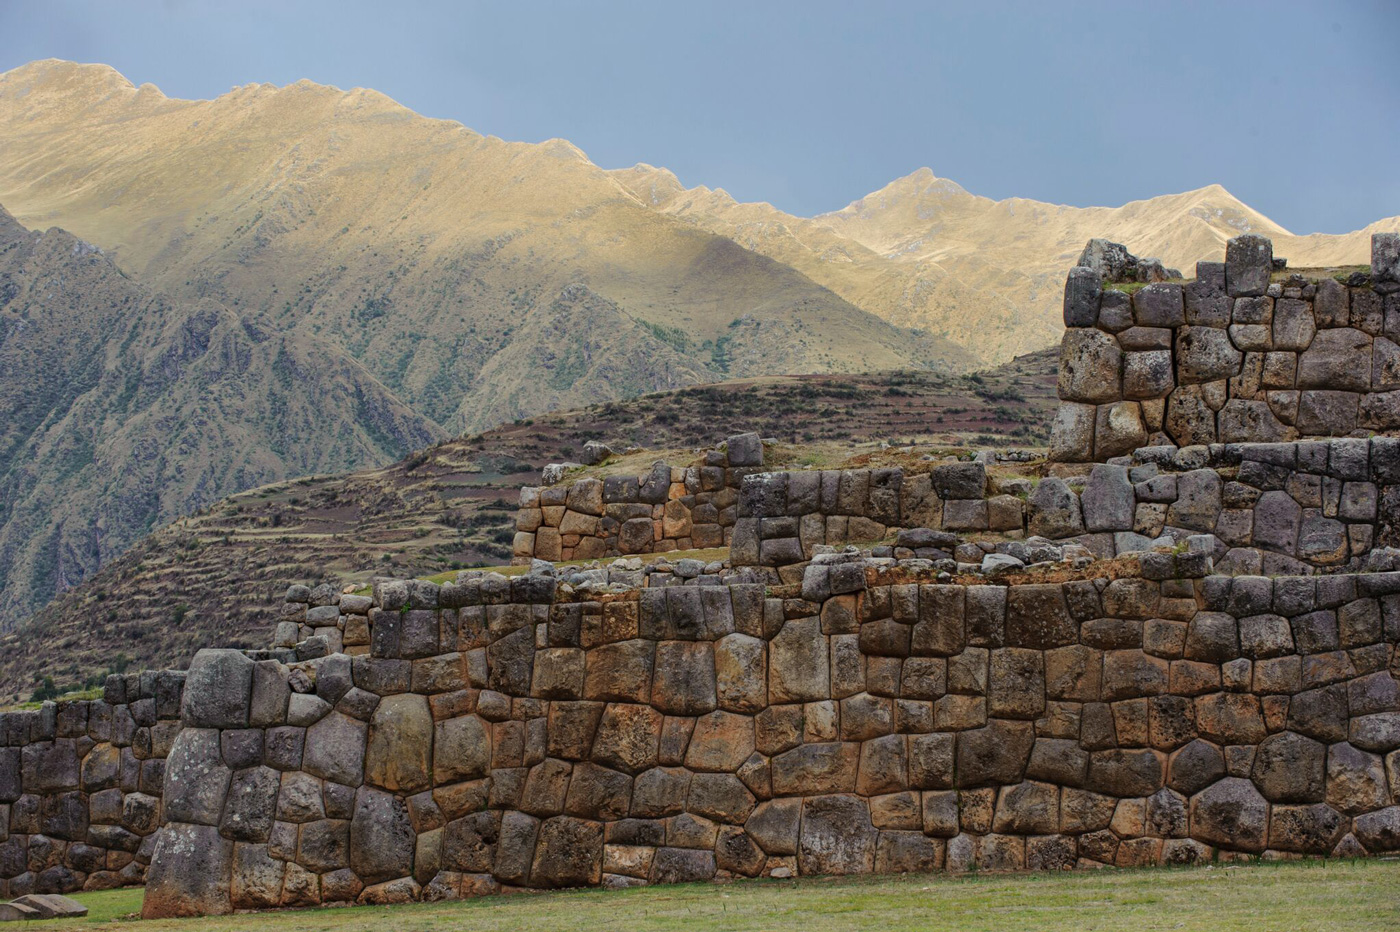 Inca leader Tupac Yupanqui built these stone walls—part of a temple and palace complex—in 1480.